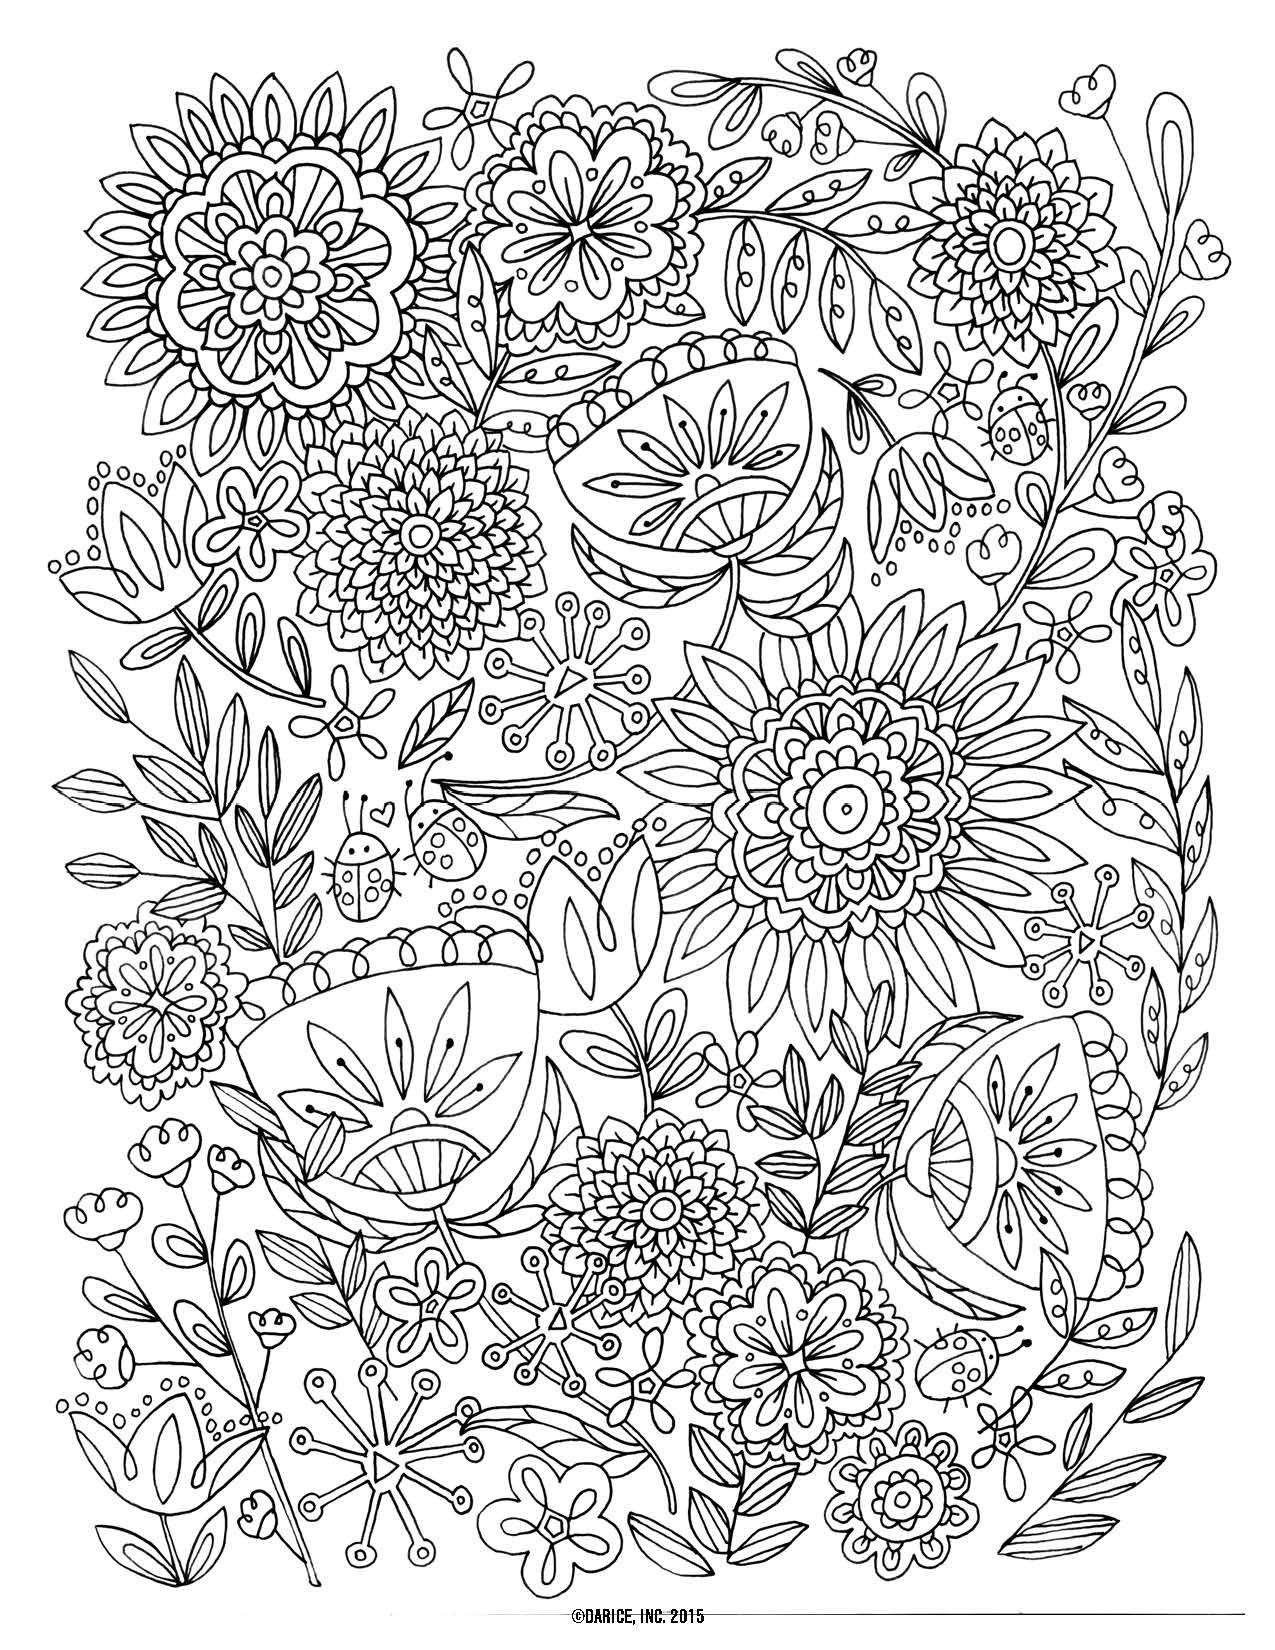 Free Printable Coloring Pages For Adults Landscapes Great Peacock